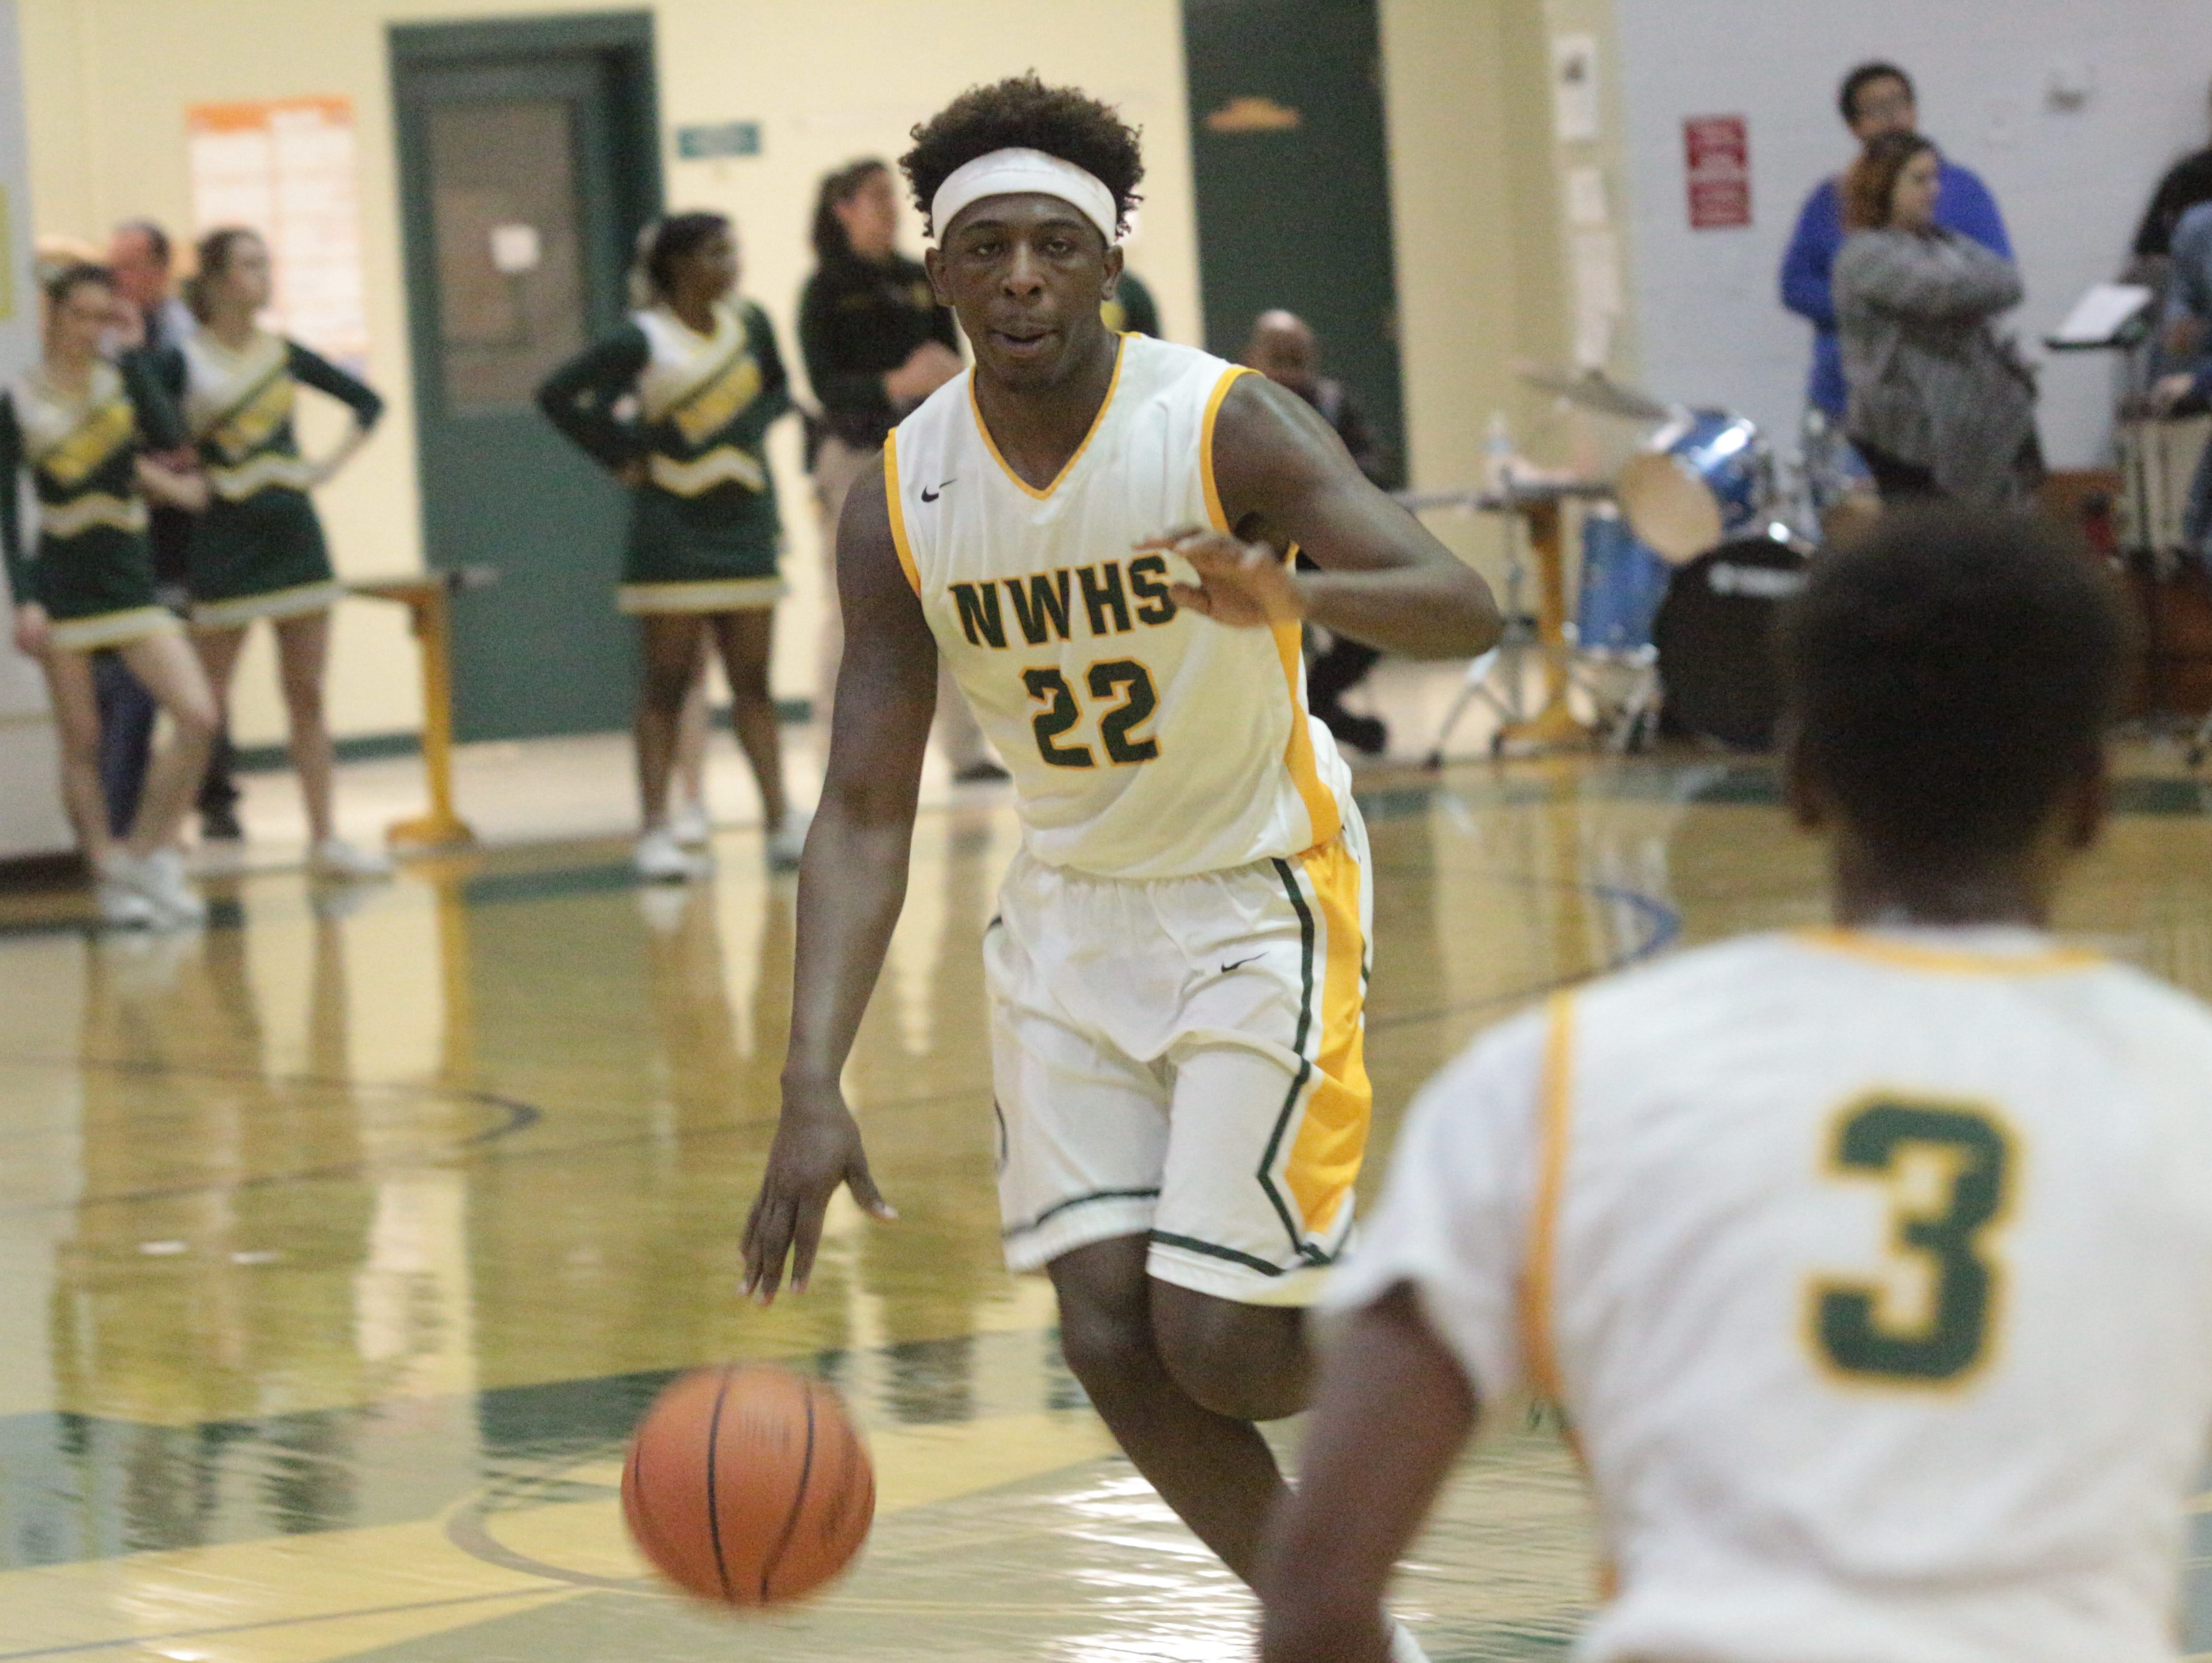 Northwest guard Tariq Silver (22) dribbles the ball up the court in the first half of the Vikings' game against the University School of Nashville Monday at Northwest High School.